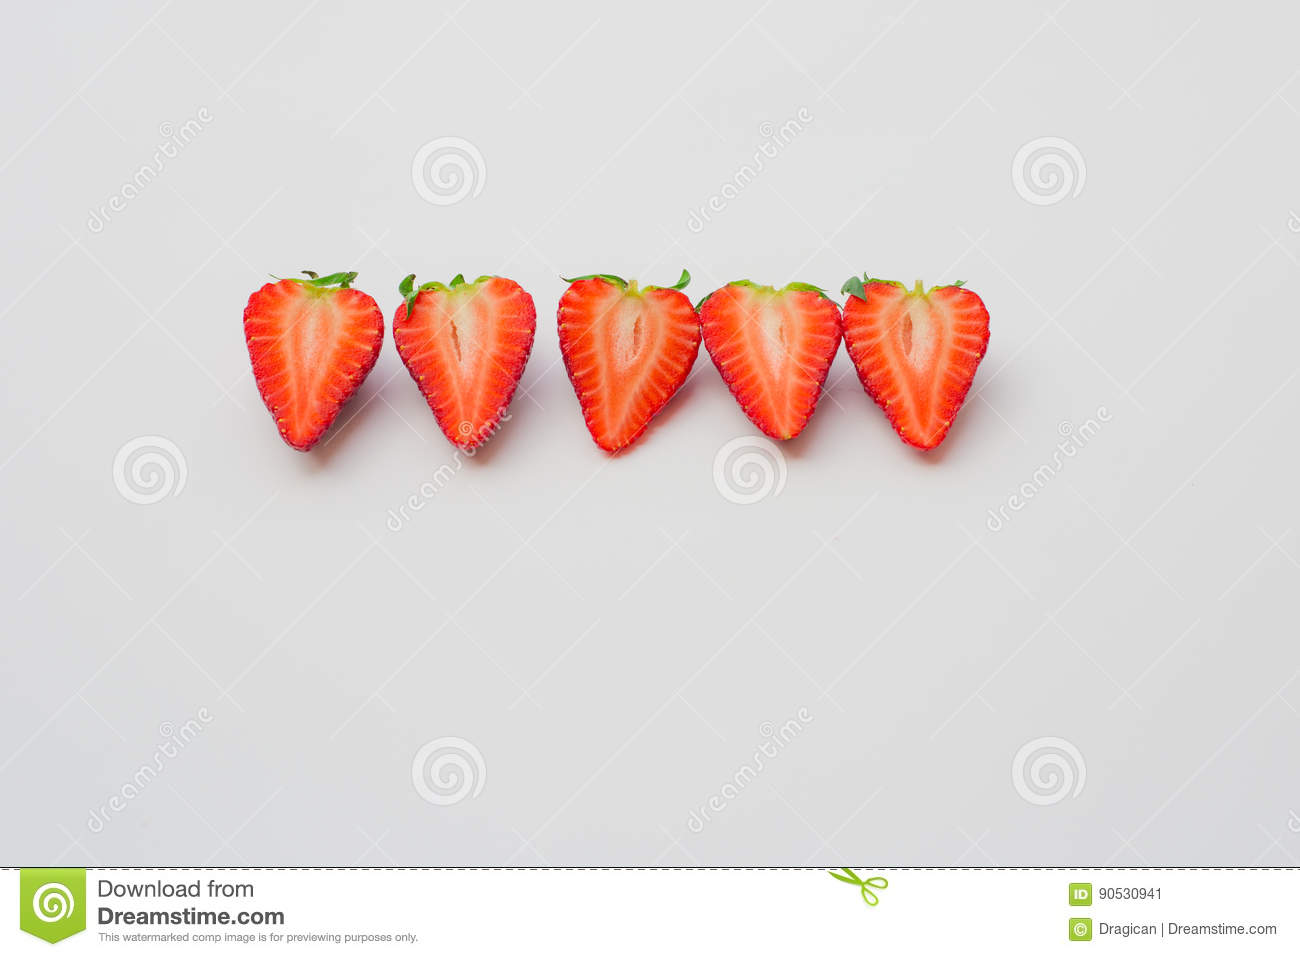 Fresh organic strawberries halved and arranged in a line on a white background.